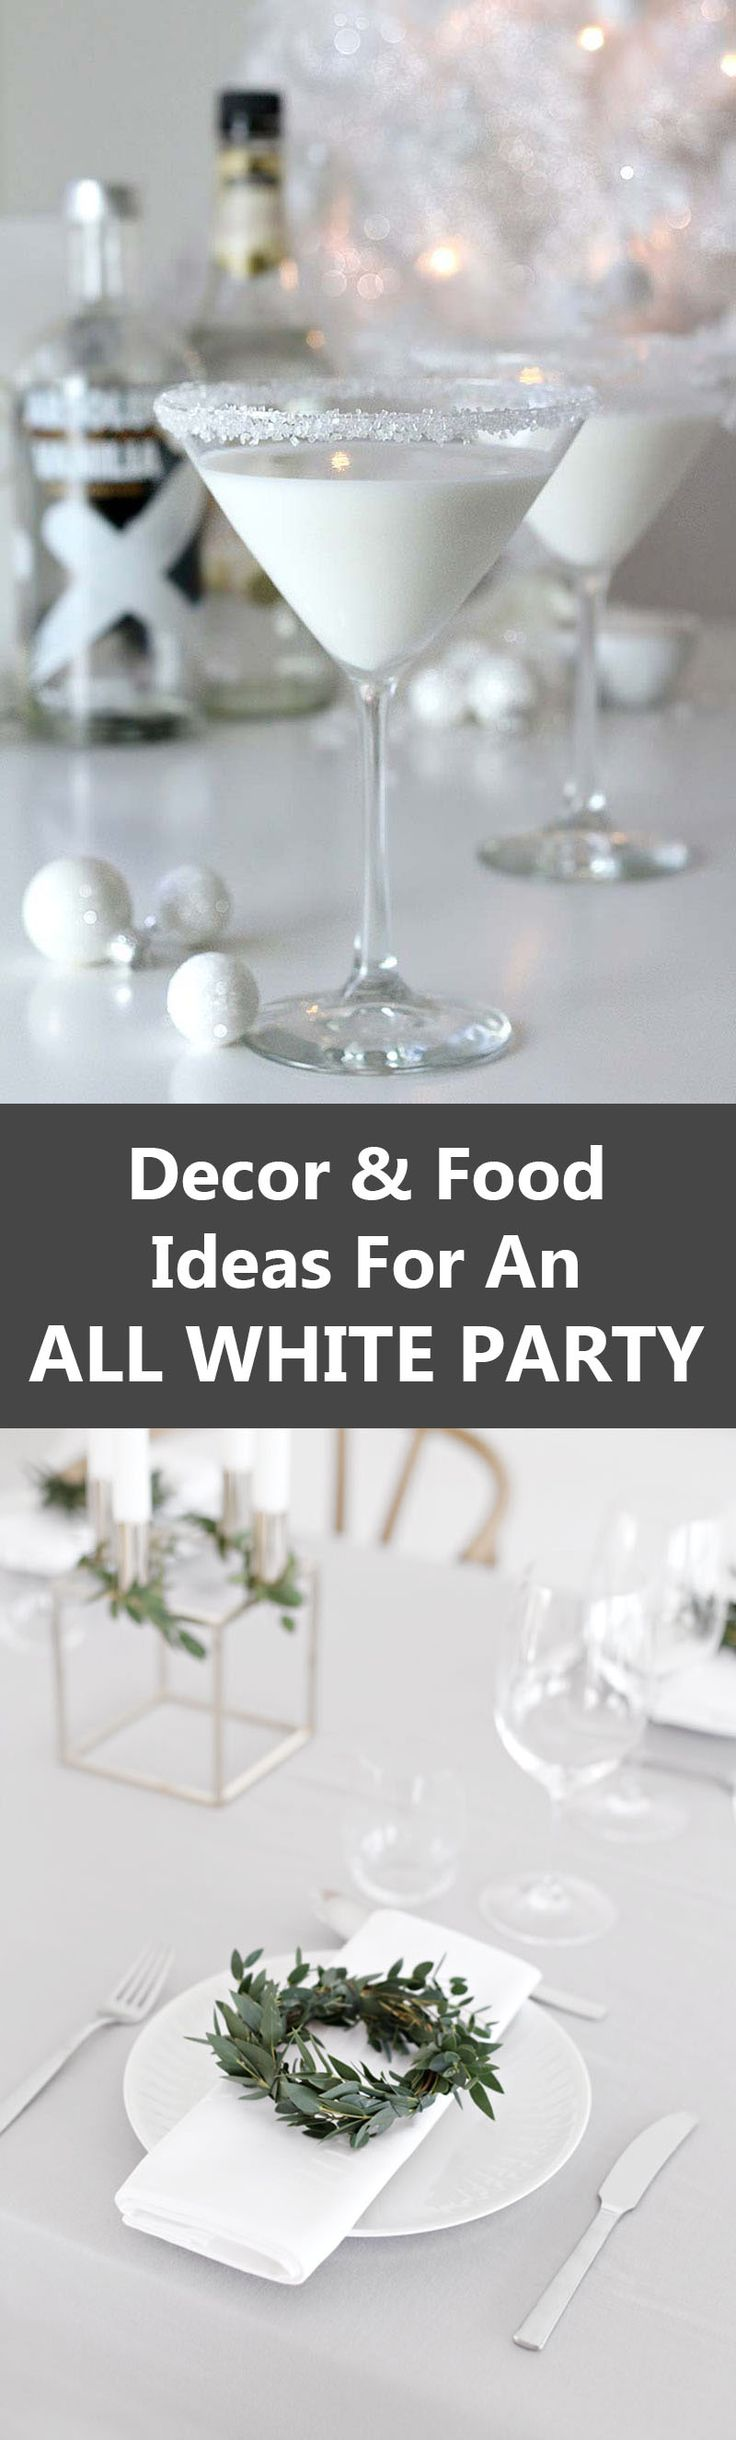 Decor And Food Ideas For An ALL WHITE PARTY!